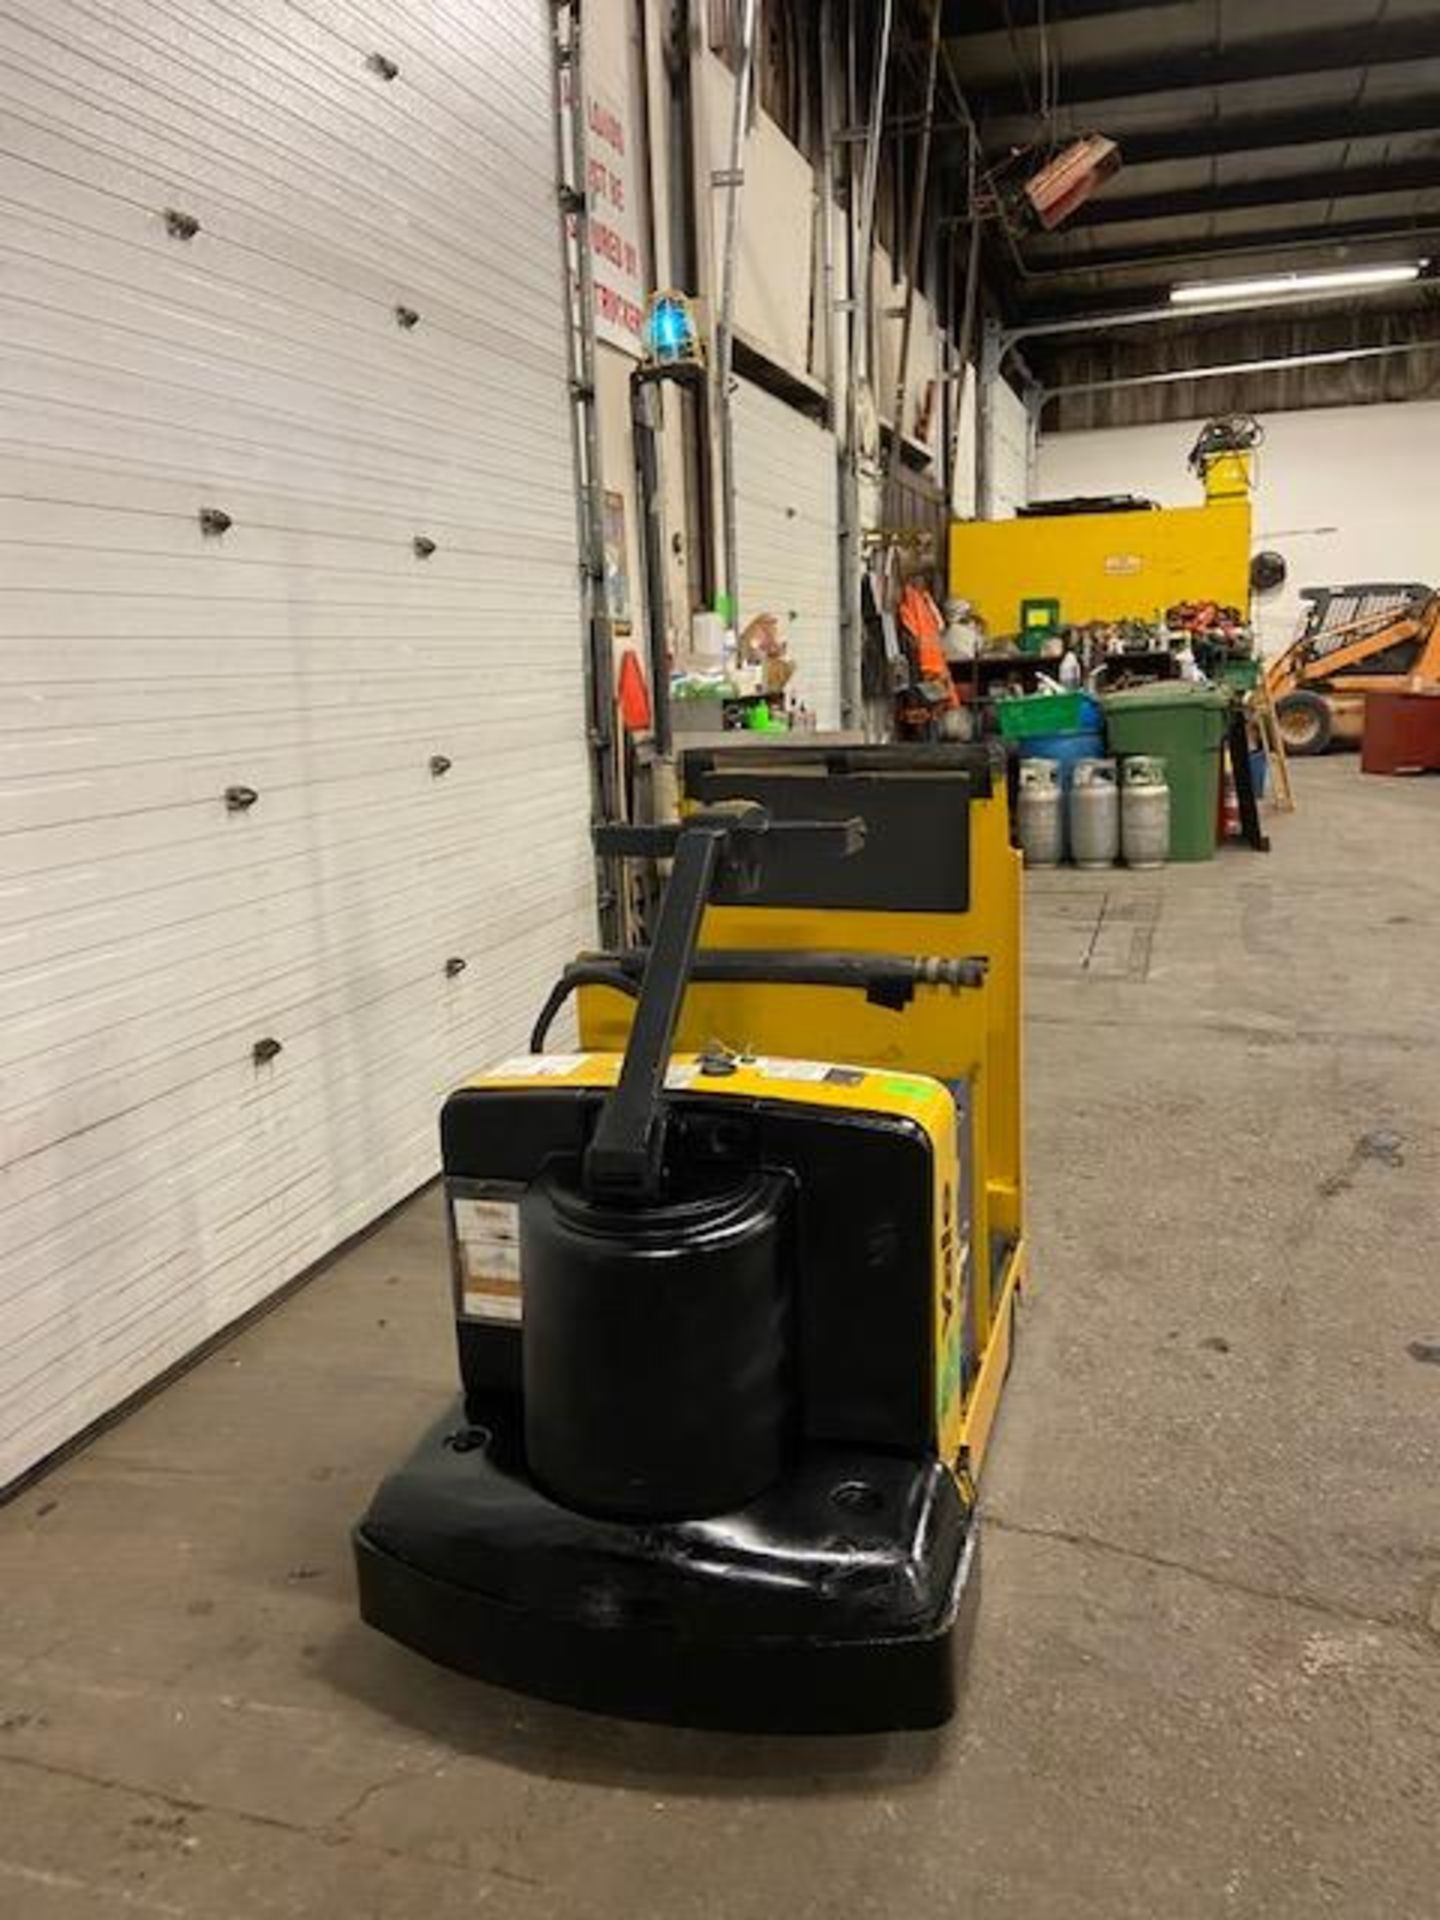 2011 Yale Ride On Tow Tractor - Tugger / Personal Carrier Electric 24V - Image 2 of 3